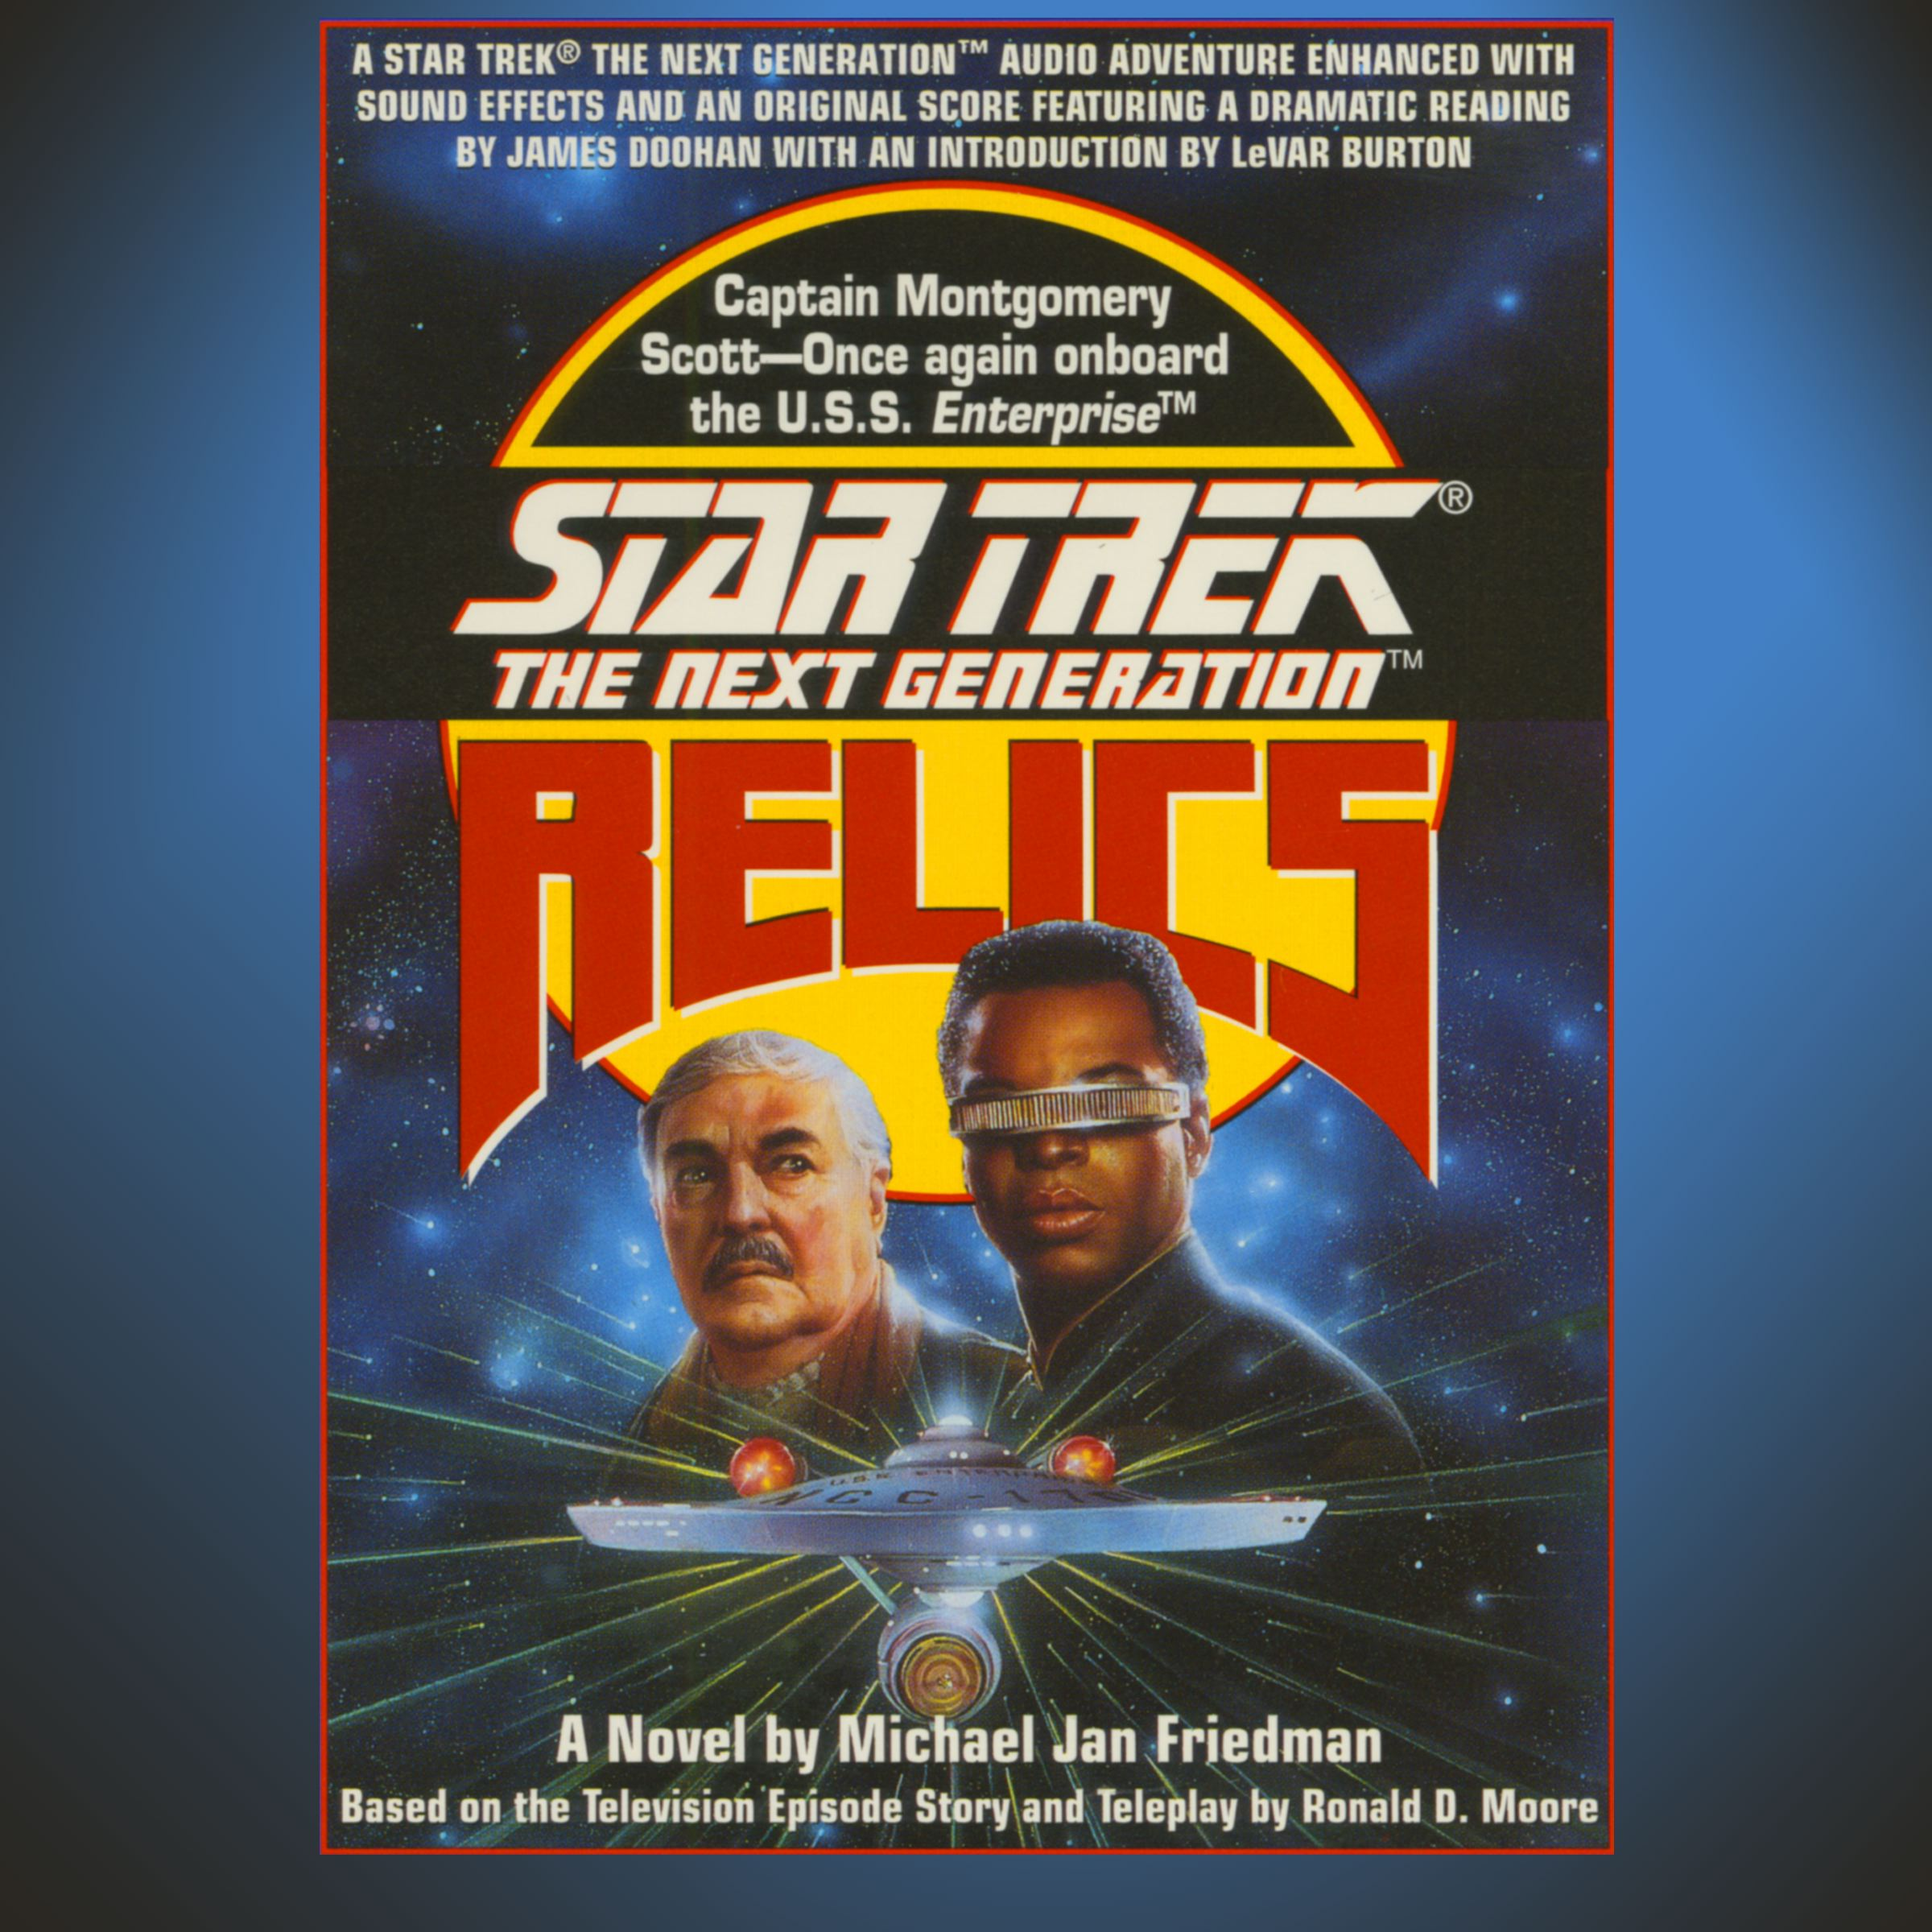 Star trek the next generation relics 9781442368354 hr